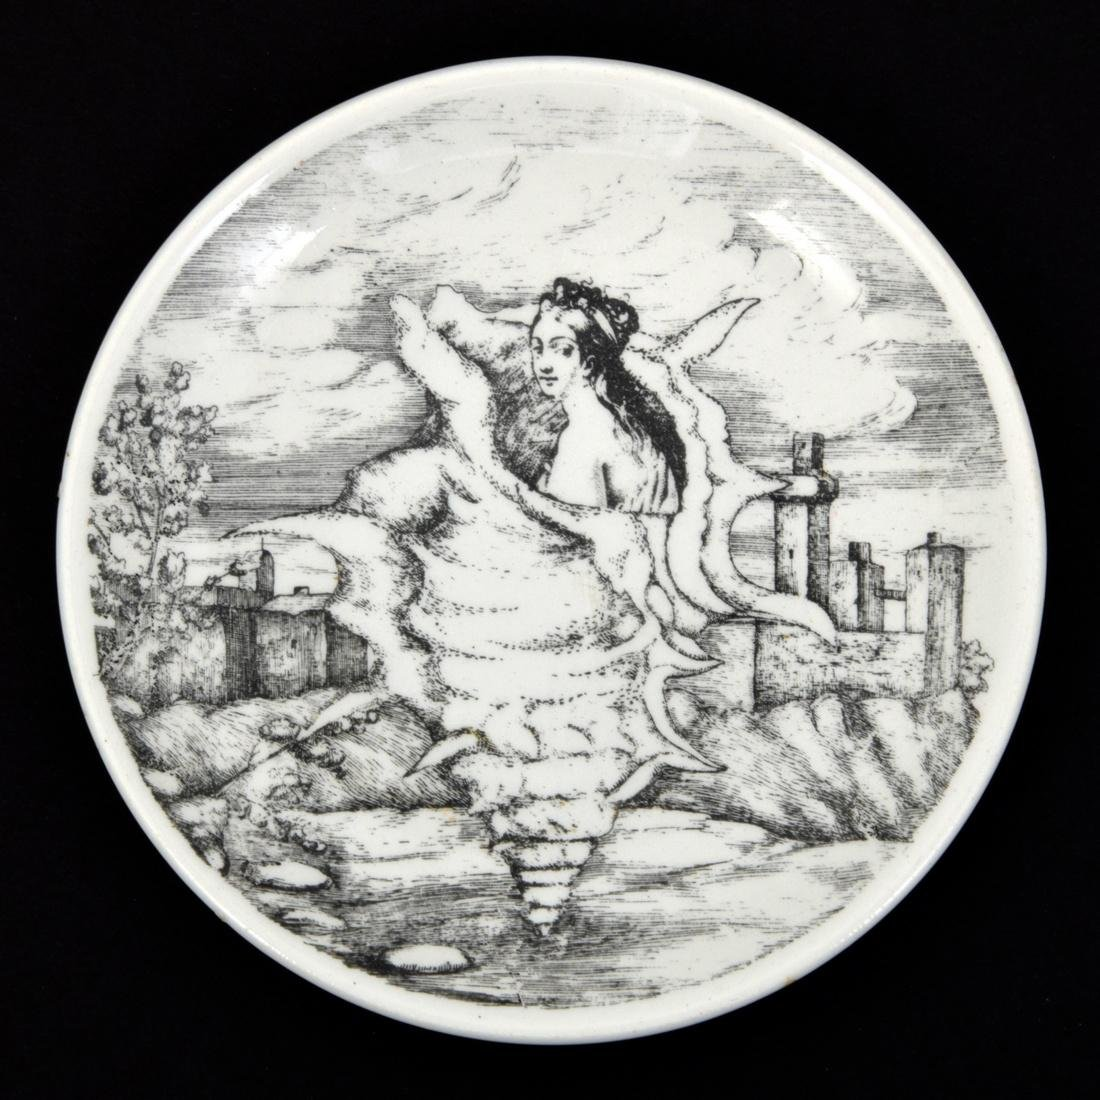 Piero Fornasetti LE OCEANIDI Coasters, Set of 6 - 6